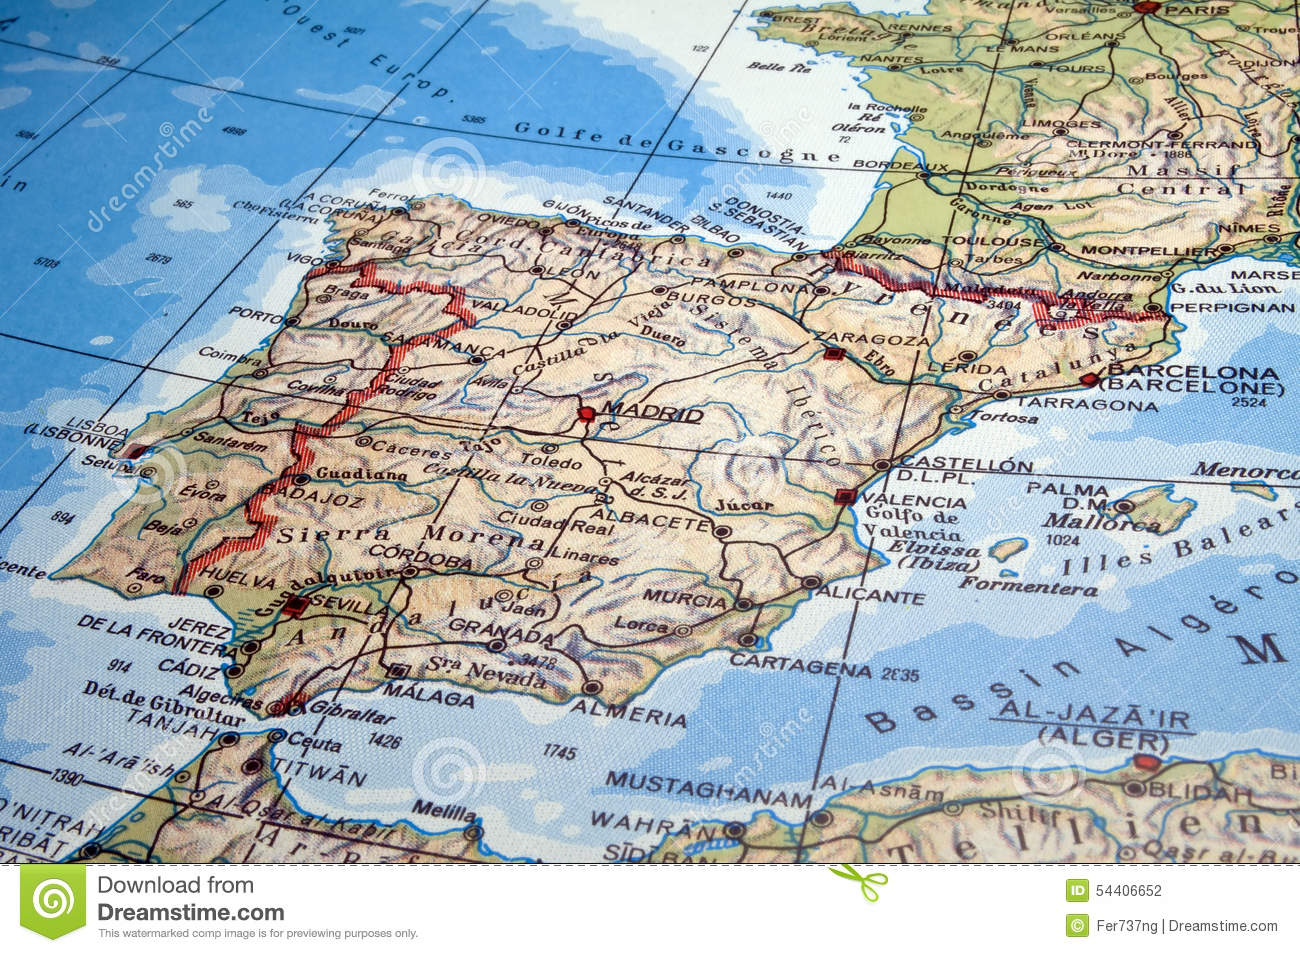 Map Of Spain And Portugal And France.Spain And Portugal Map Stock Photo Image Of Mediterranean 54406652